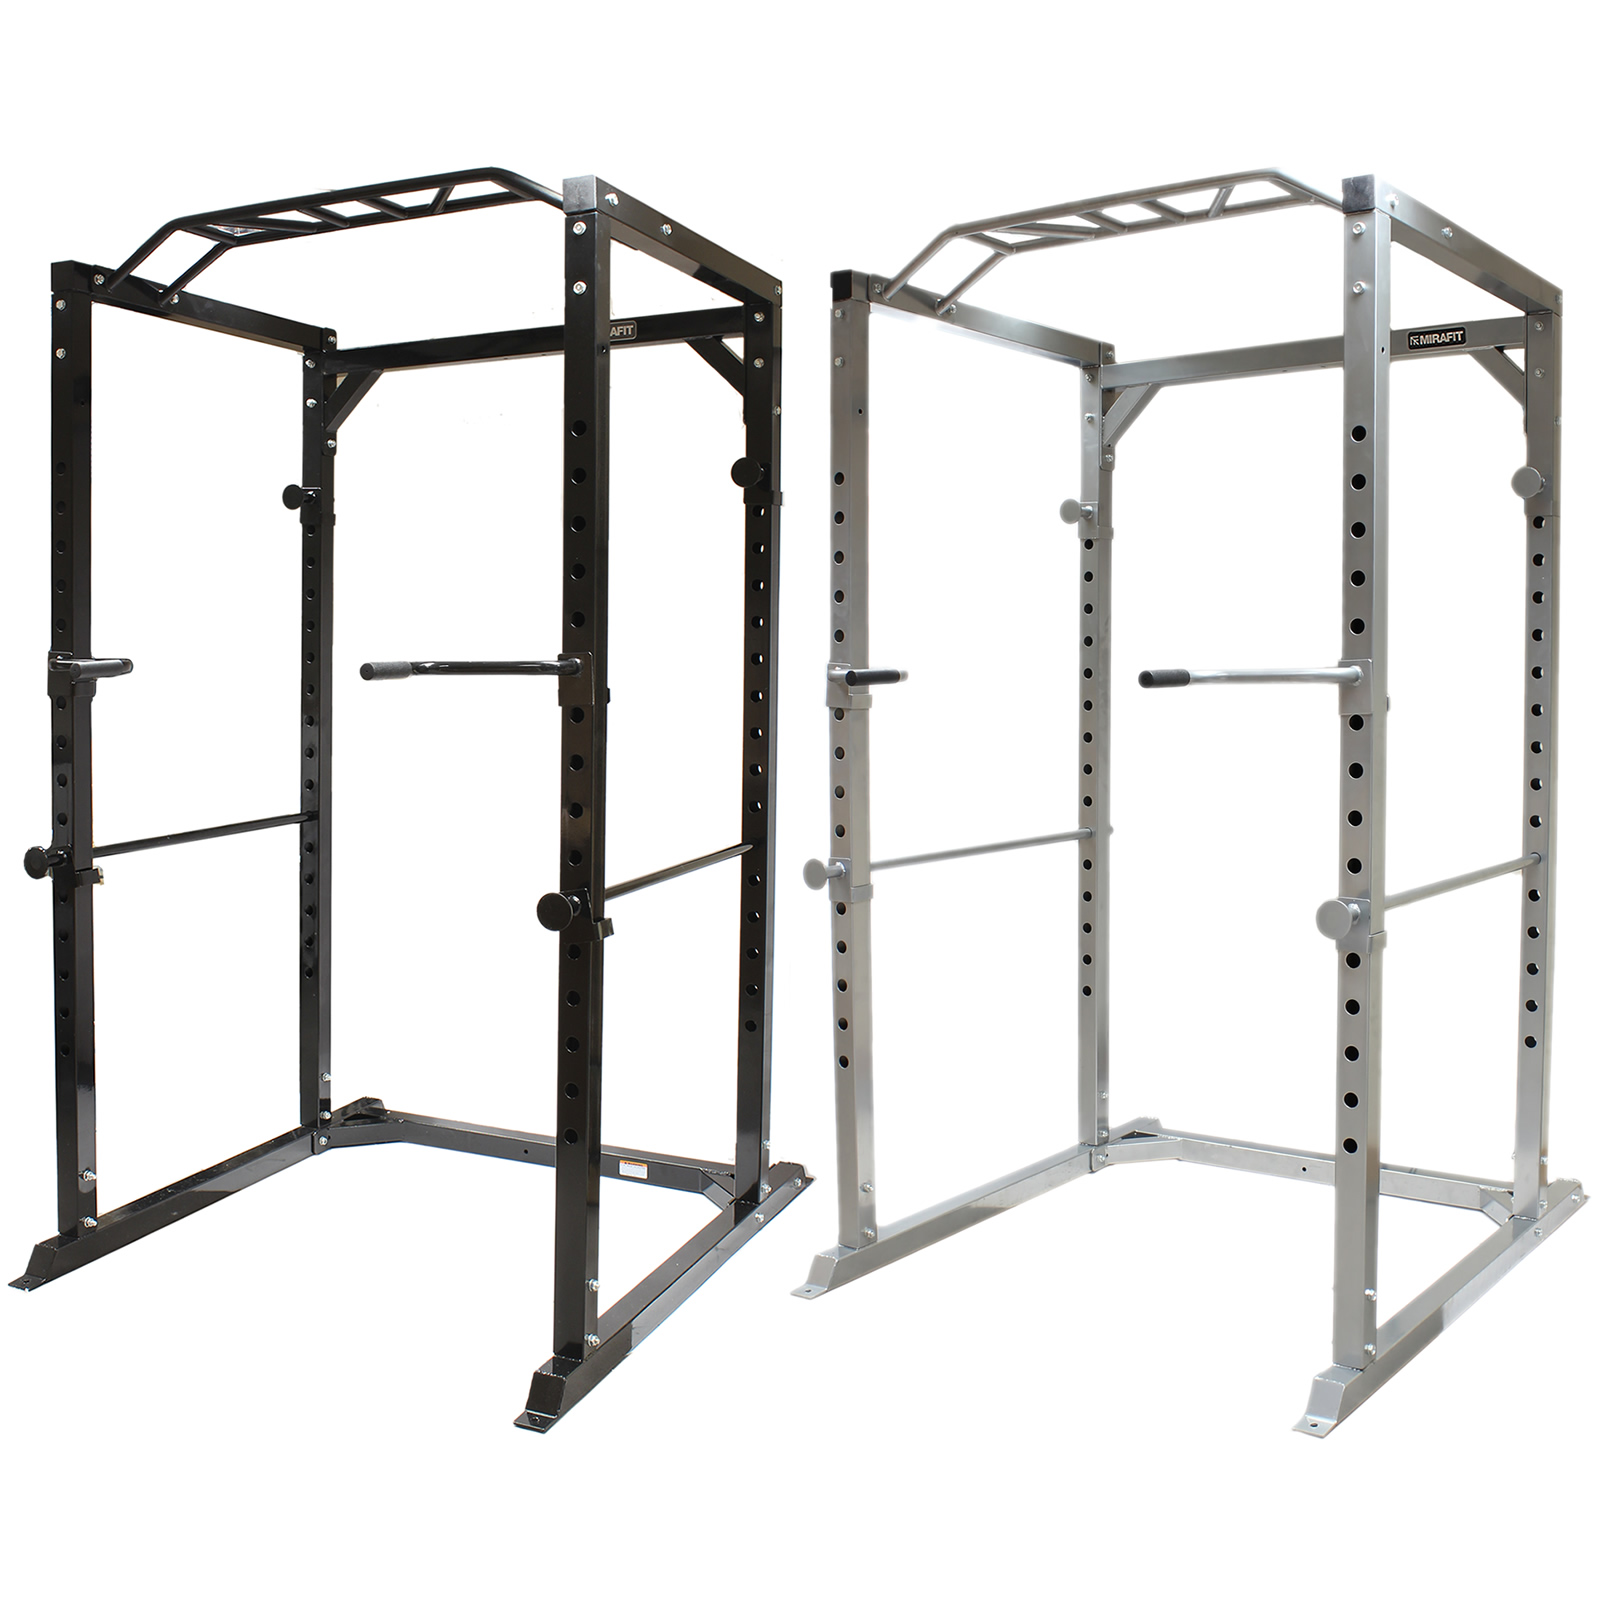 Mirafit 350kg Heavy Duty Olympic Full Power Cage Rack Squat Bench Press Home Gym Ebay